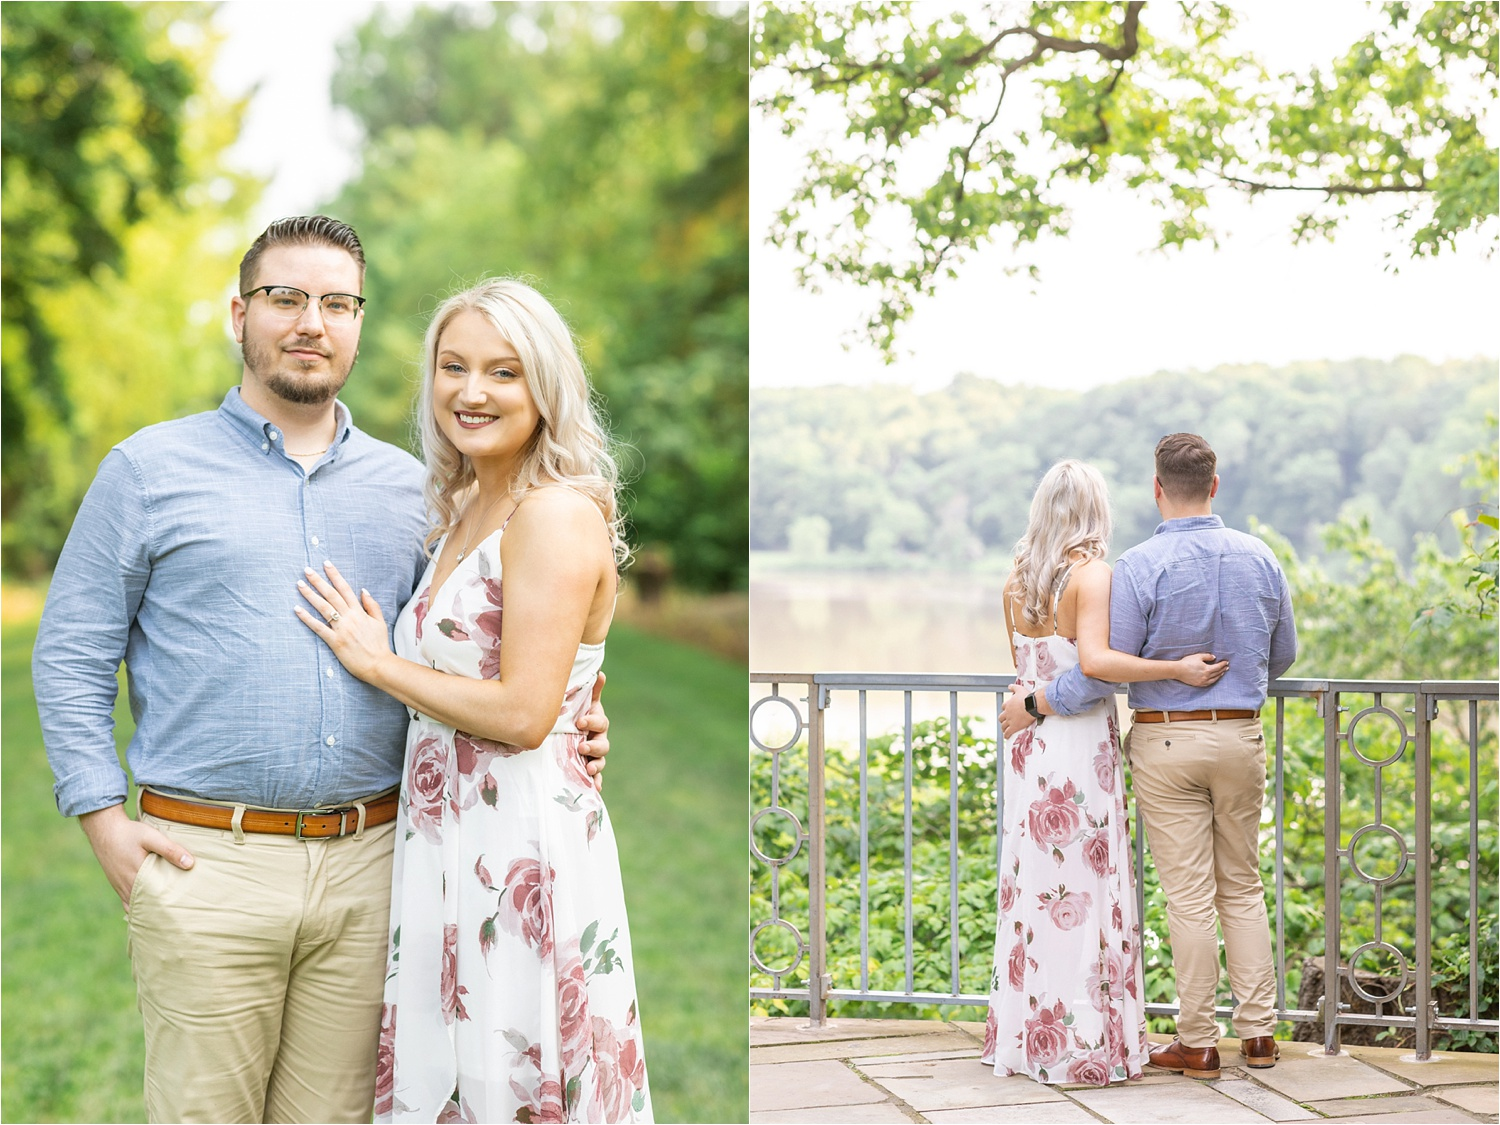 fellows riverside gardens engagement photos in May